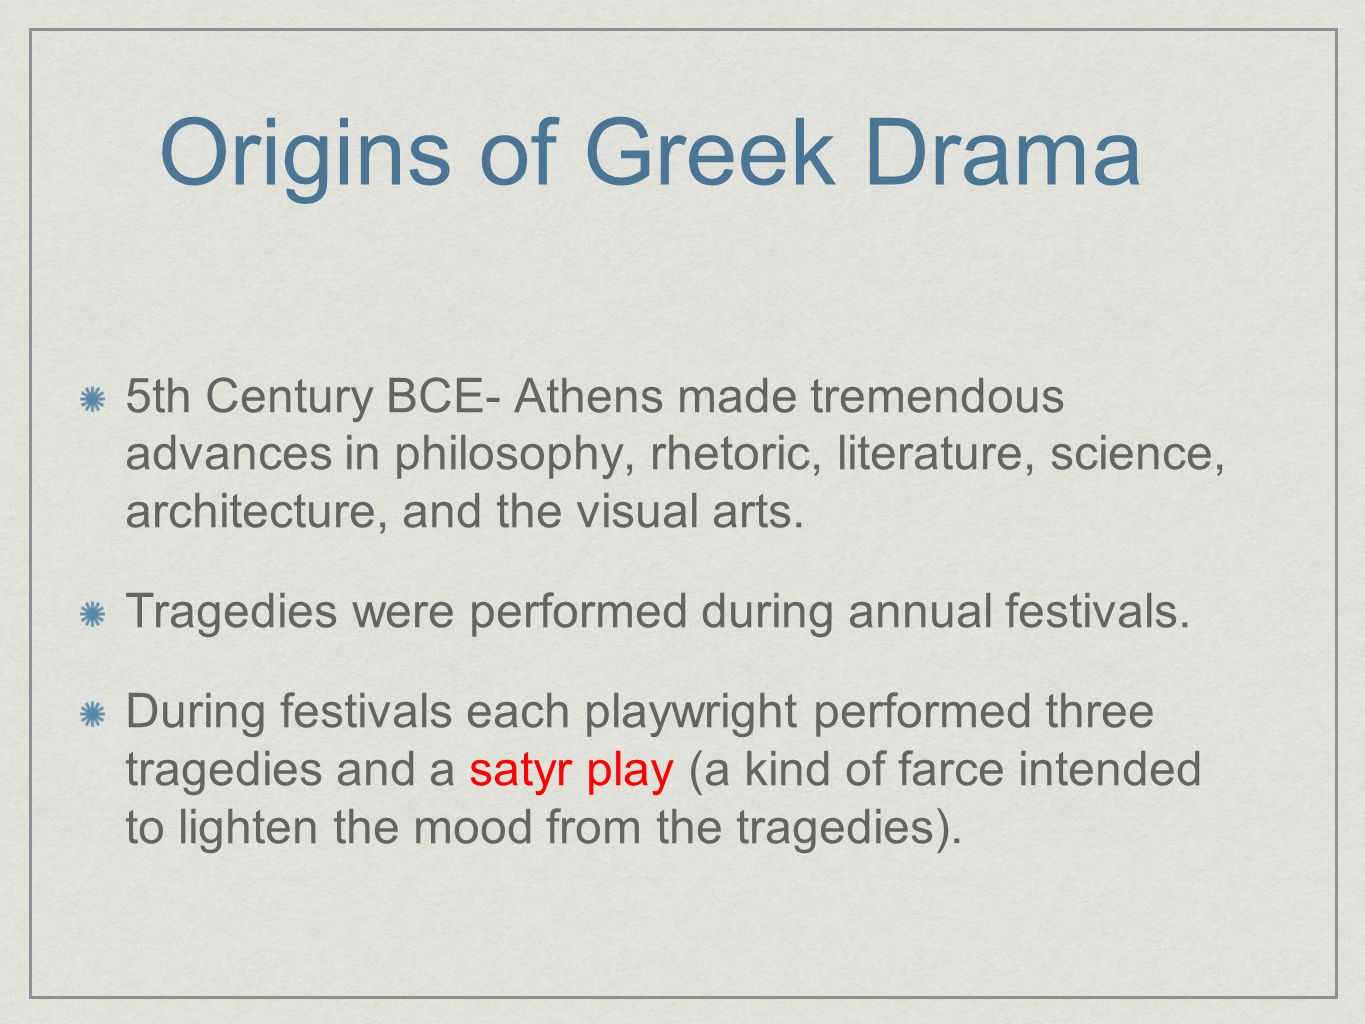 Origins of Greek Drama